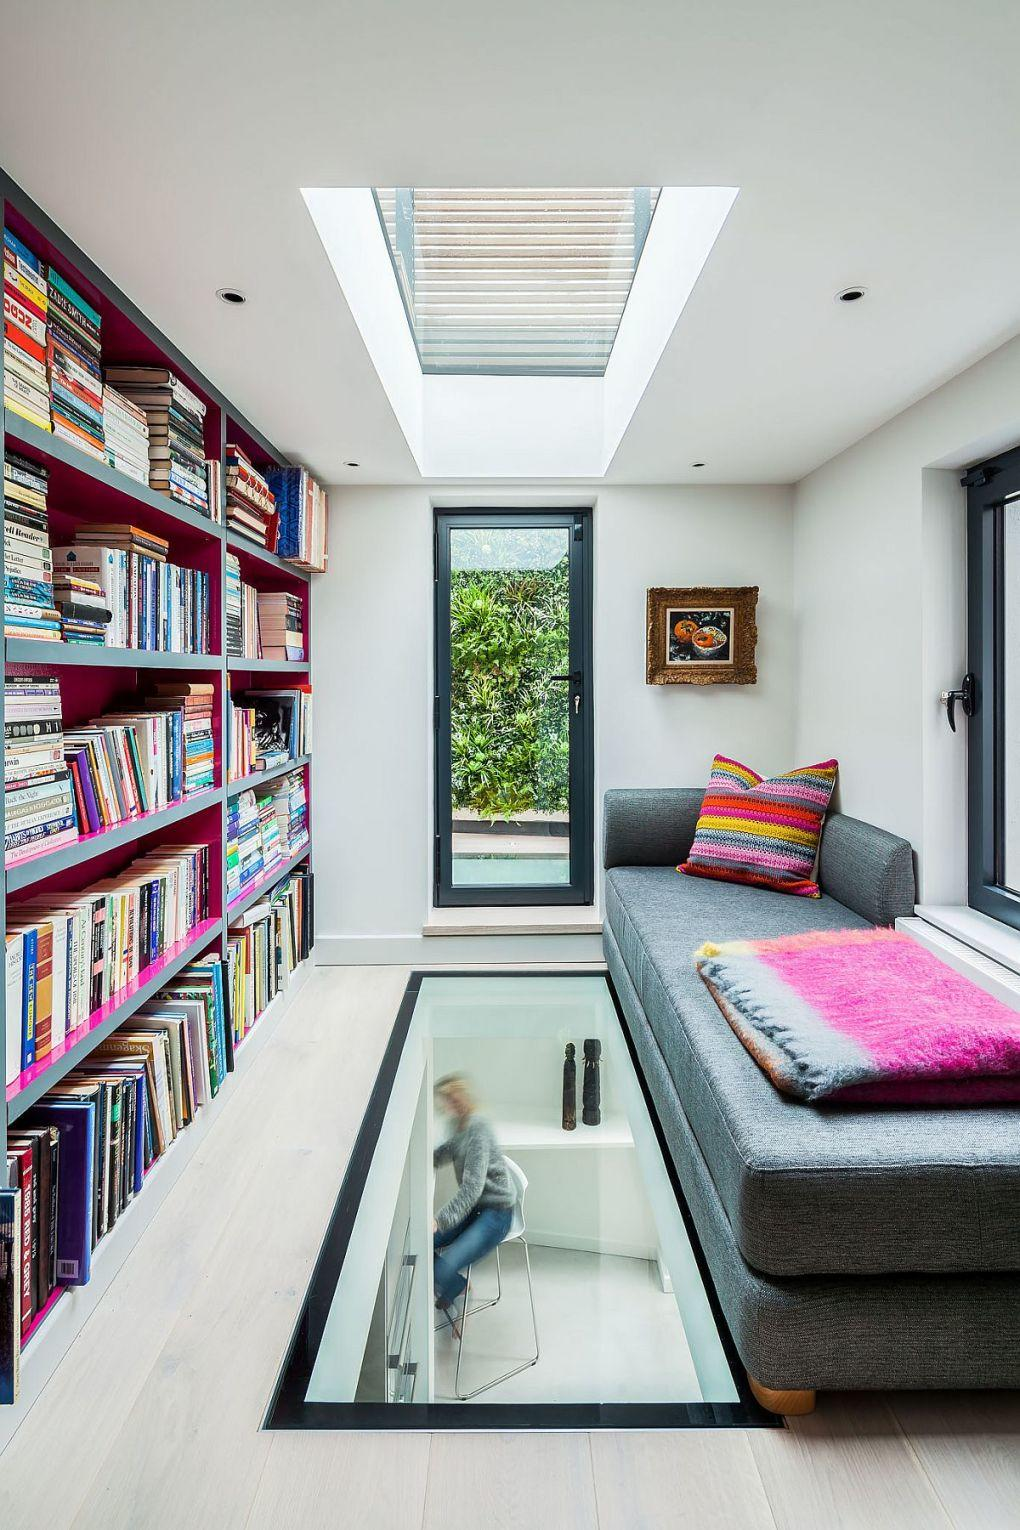 Eski Ev Yenileme Fikirleri | Glass flooring and skylight bring in ample natural light 1